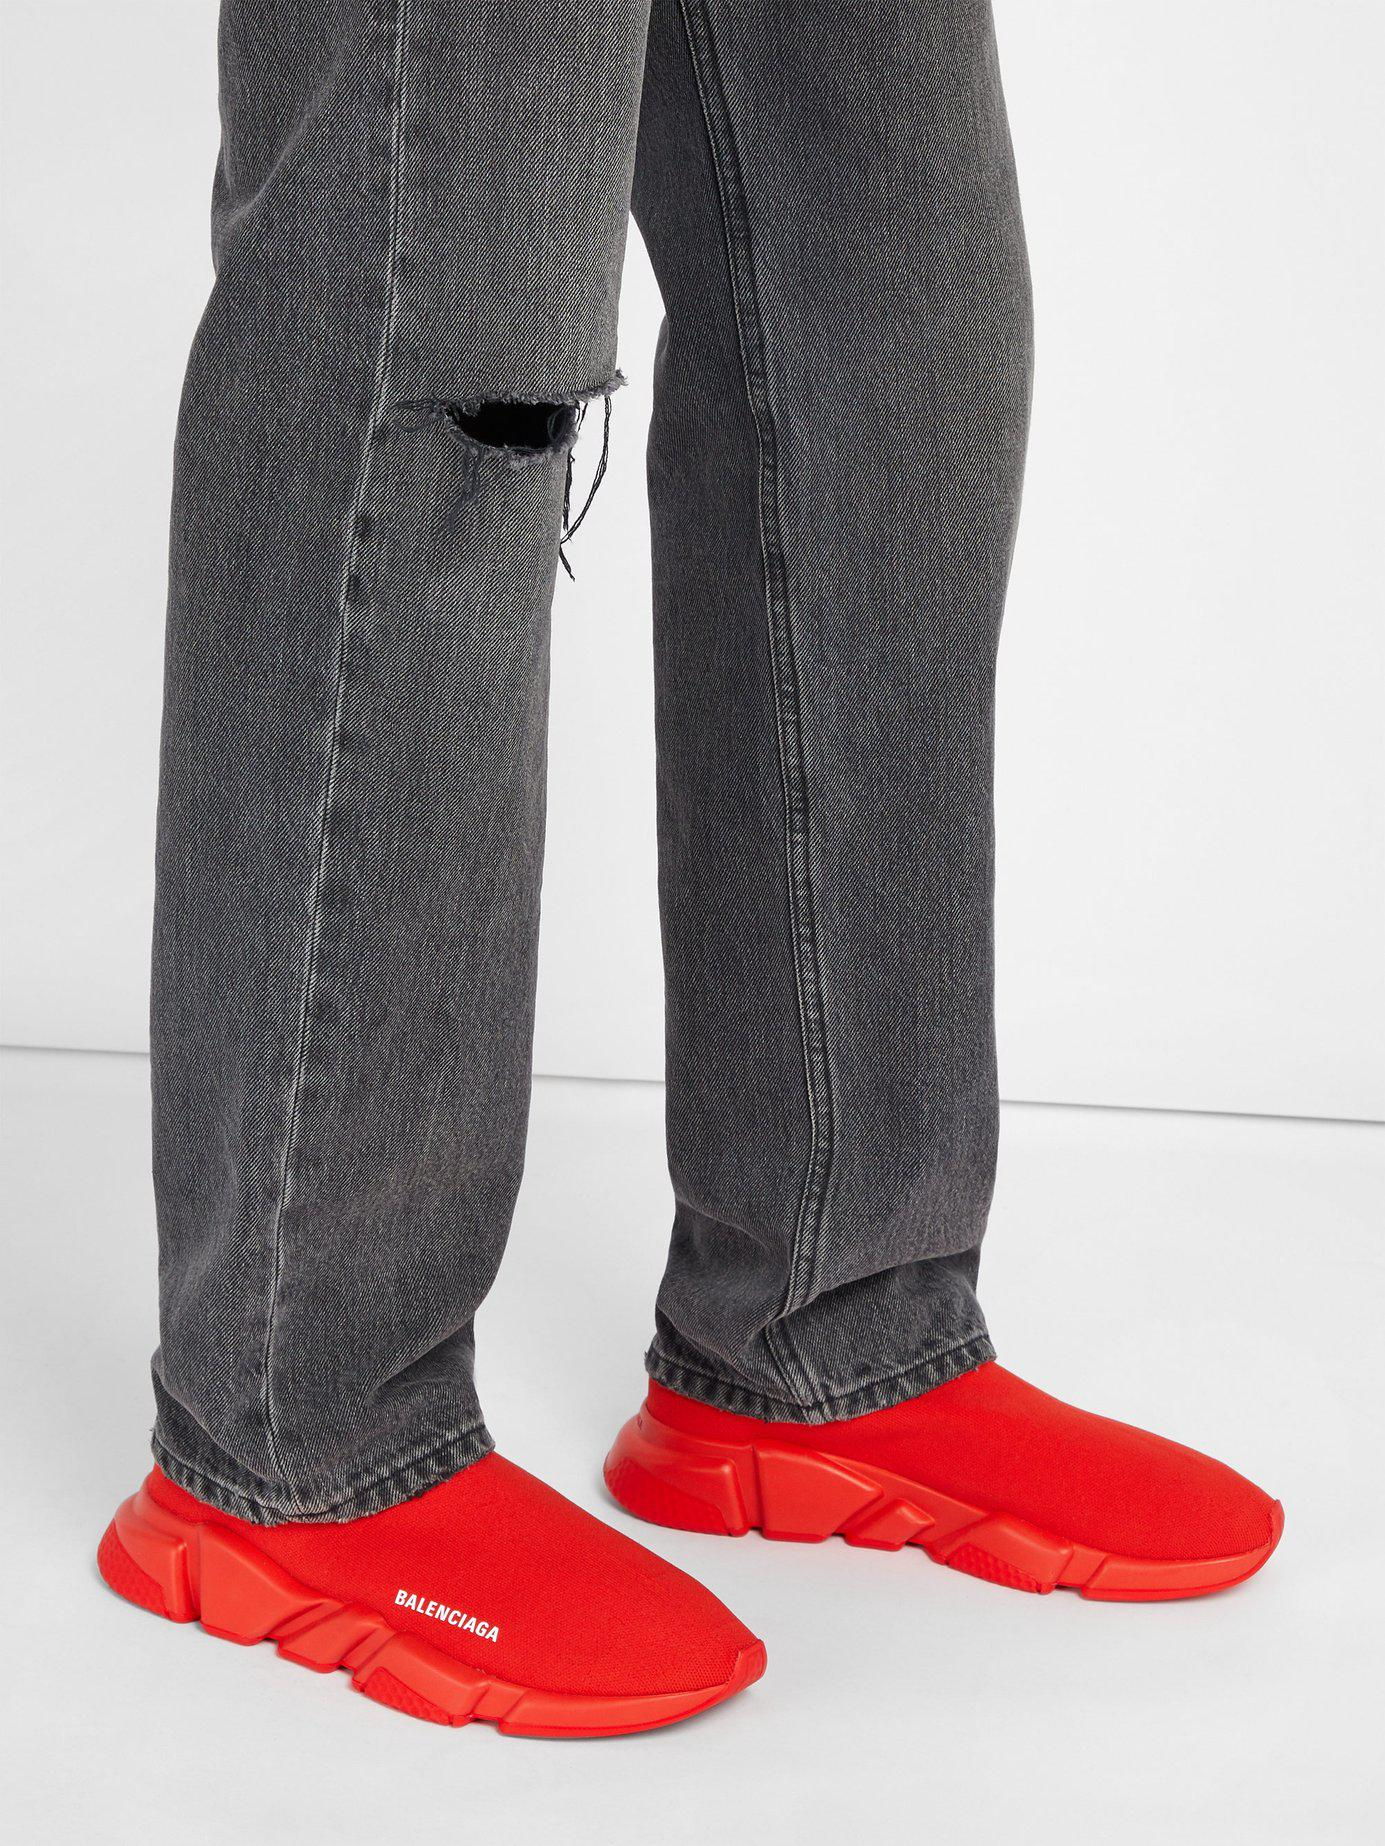 c7fbc8e54f0f Lyst - Balenciaga Speed Red Stretch-knit Trainers in Red for Men - Save 20%